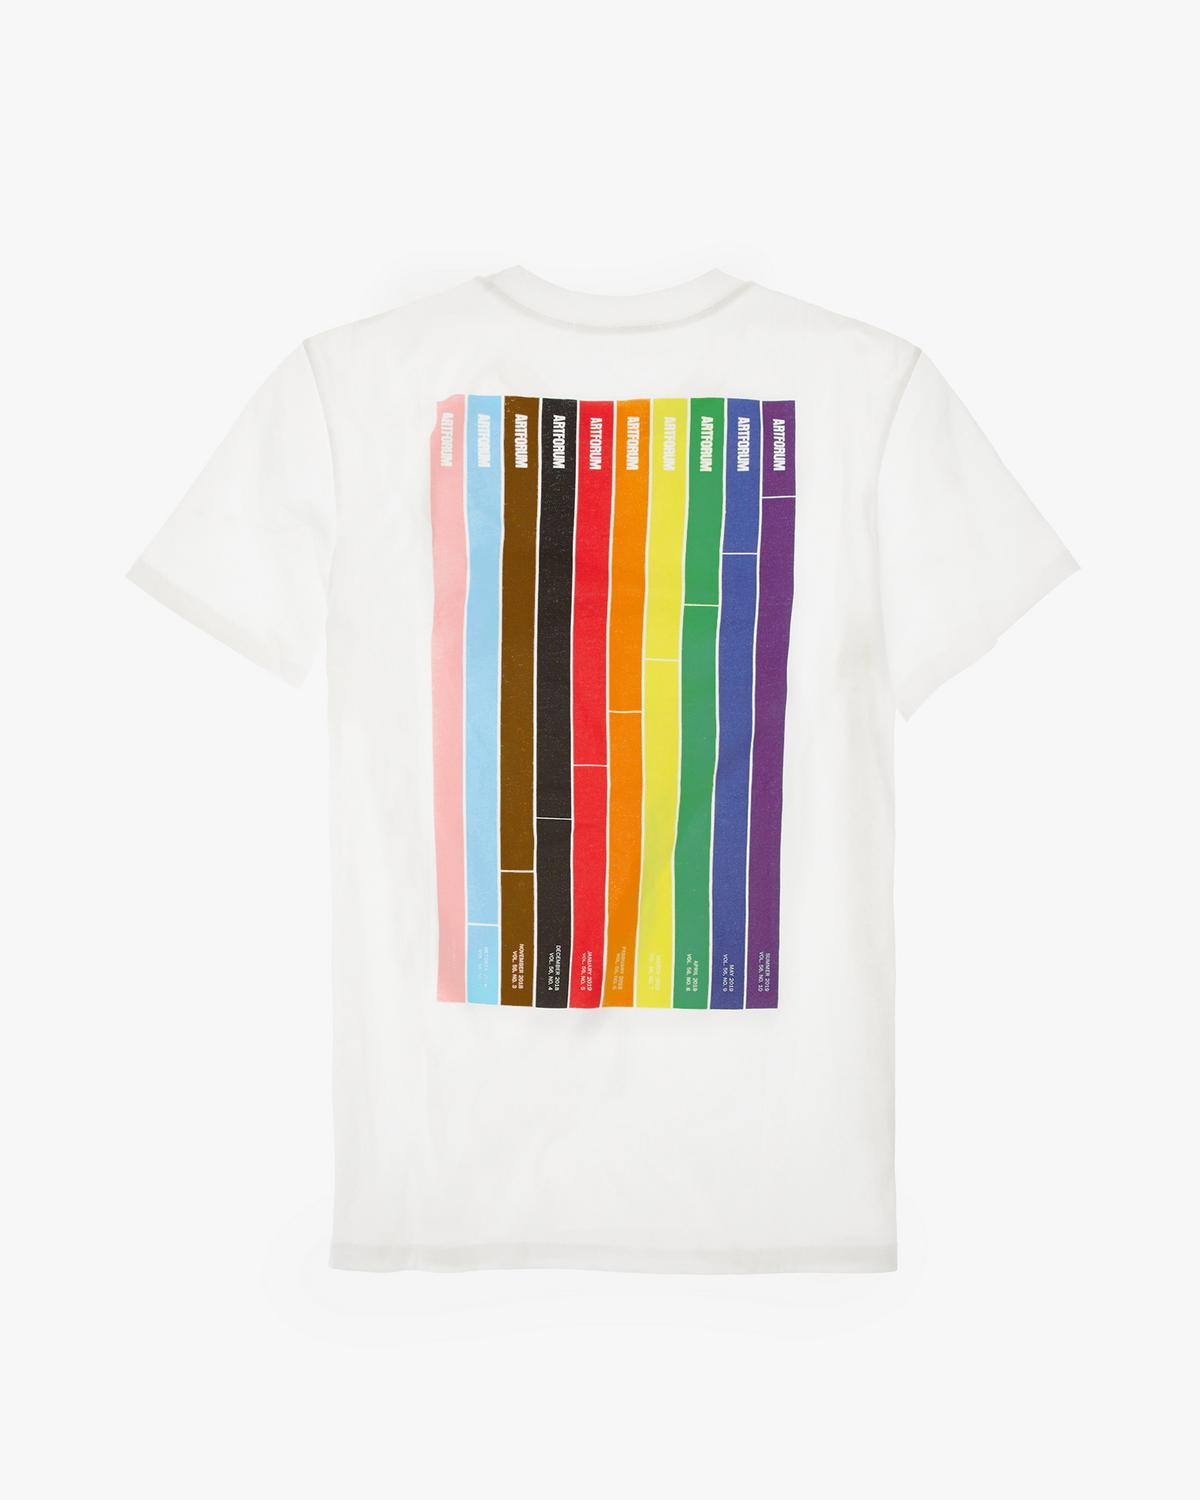 Limited Edition Artforum T-Shirt